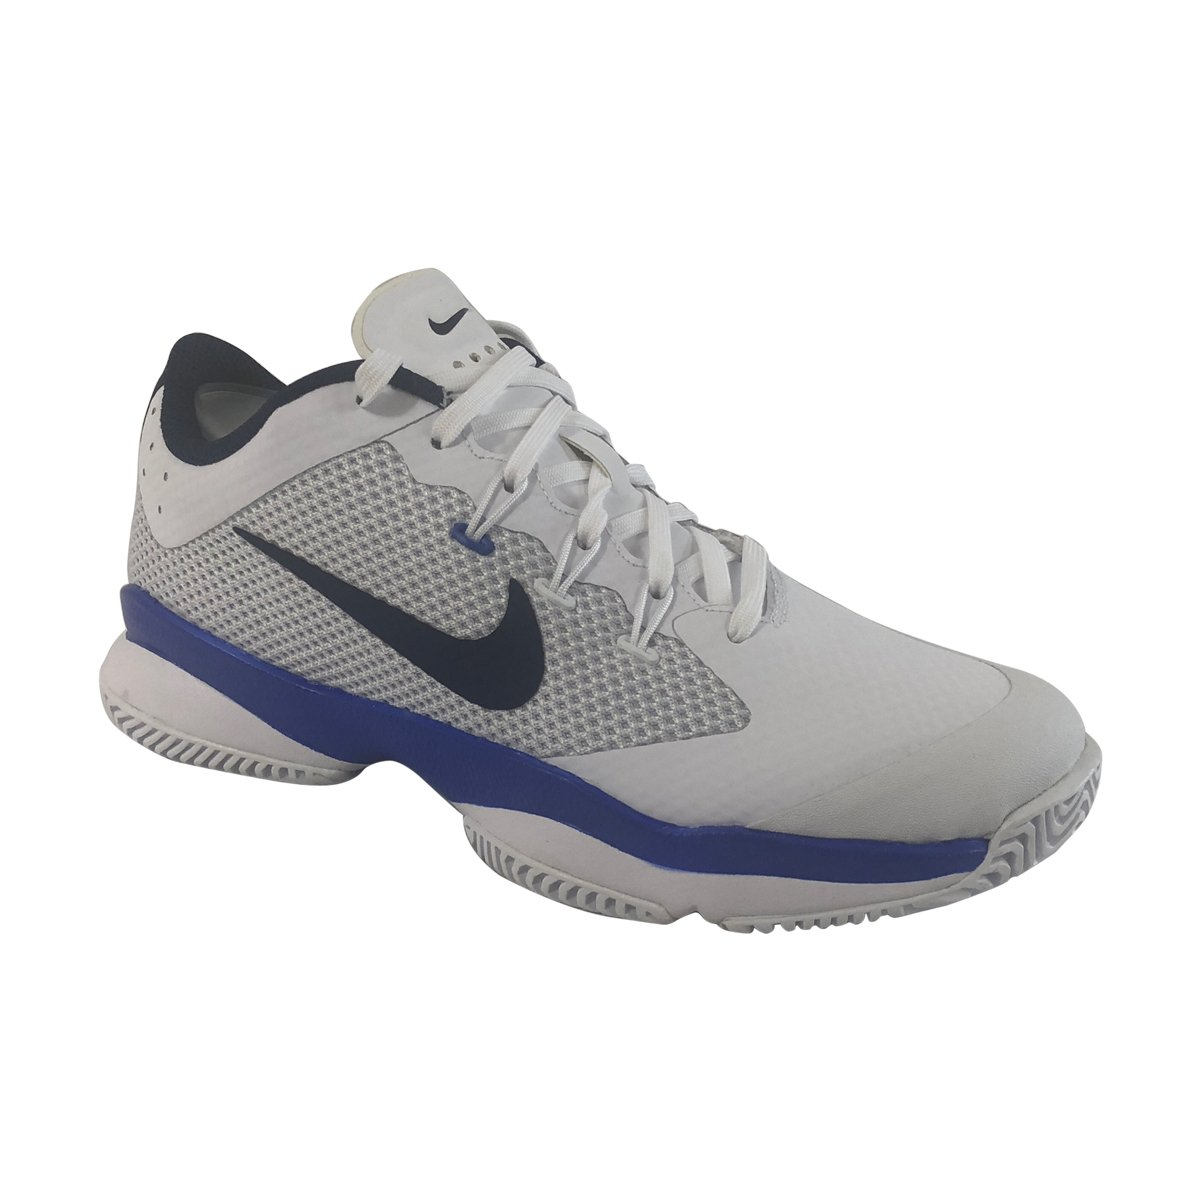 NIKE Women's Air Zoom Ultra Tennis Shoe B01N4GOW46 6 B(M) US|White/Binary Blue-mega Blue